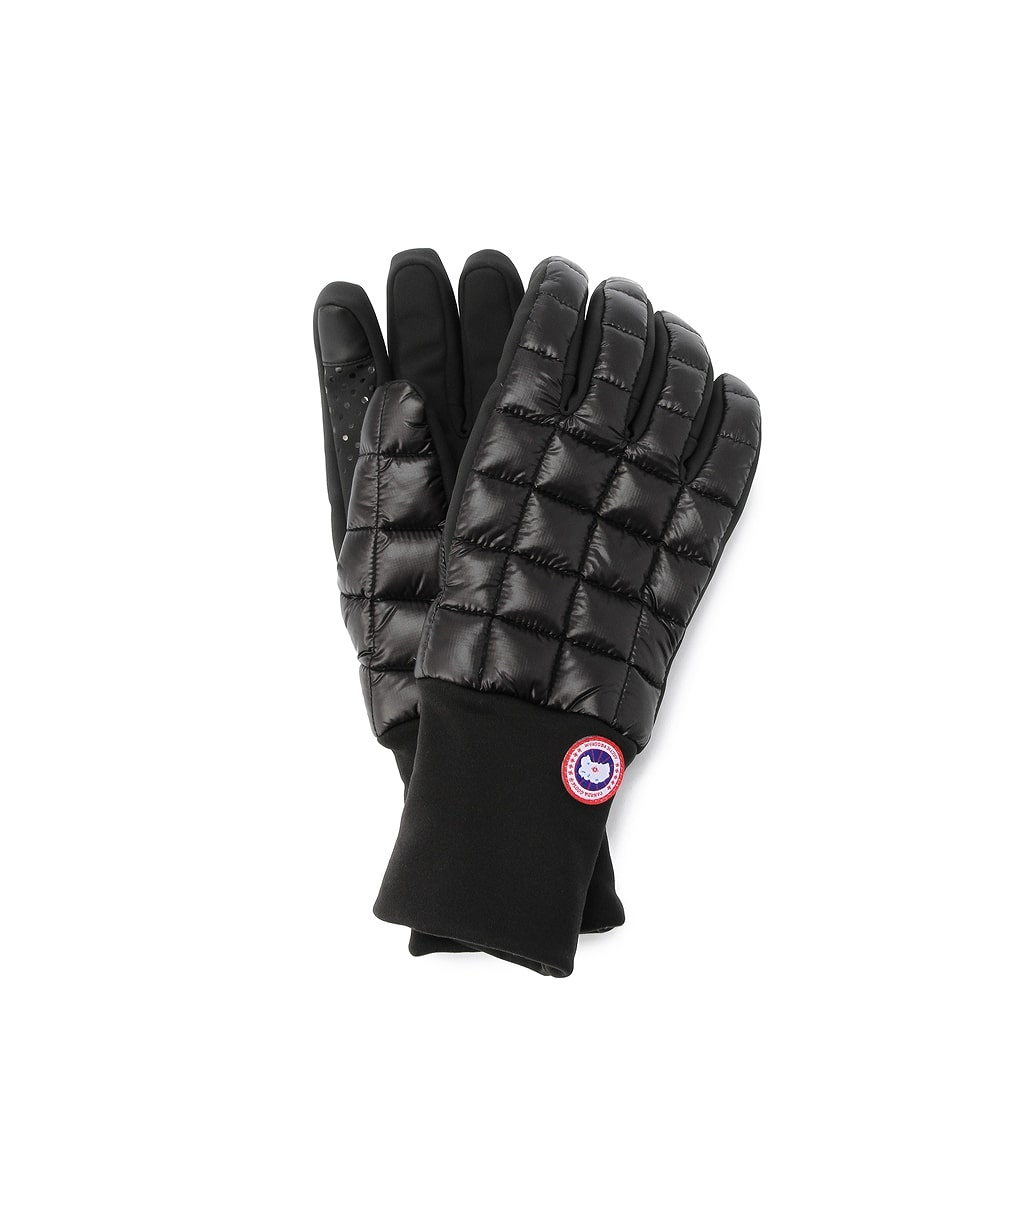 NORTHERN GLOVE LINER